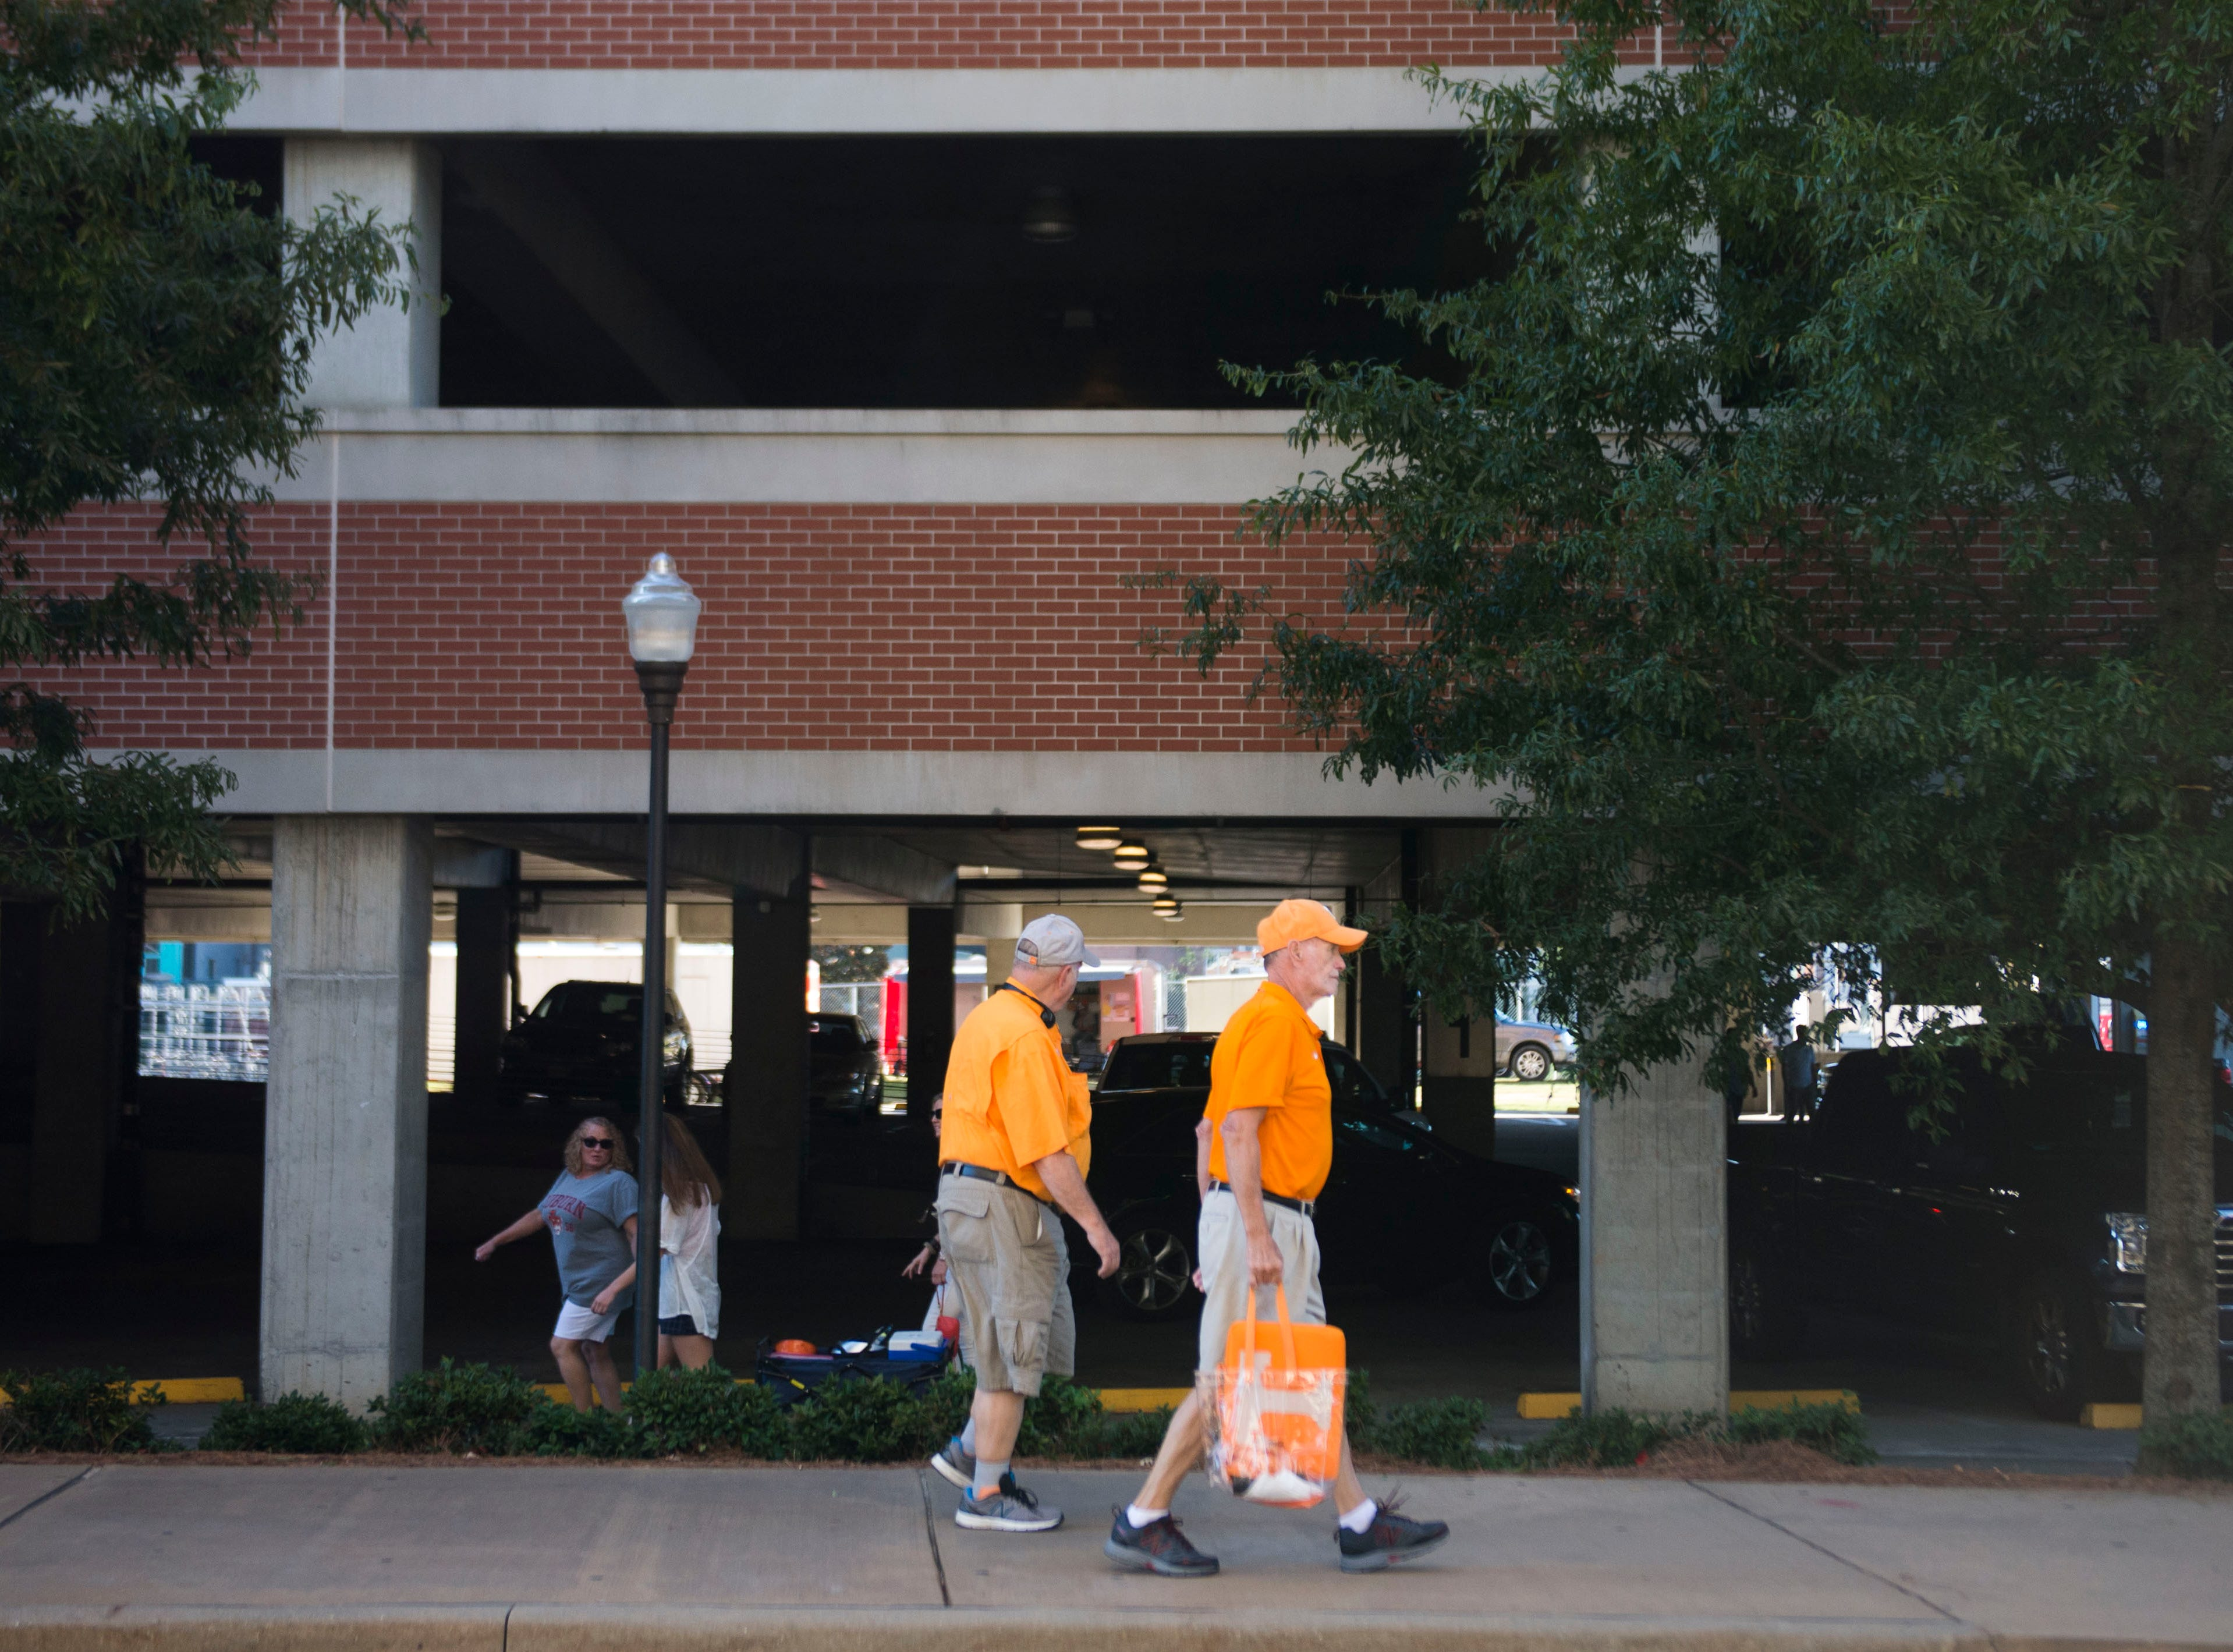 Vols fans walk around Auburn's campus before a game between Tennessee and Auburn at Jordan-Hare Stadium in Auburn, Ala. Saturday, Oct. 13, 2018.